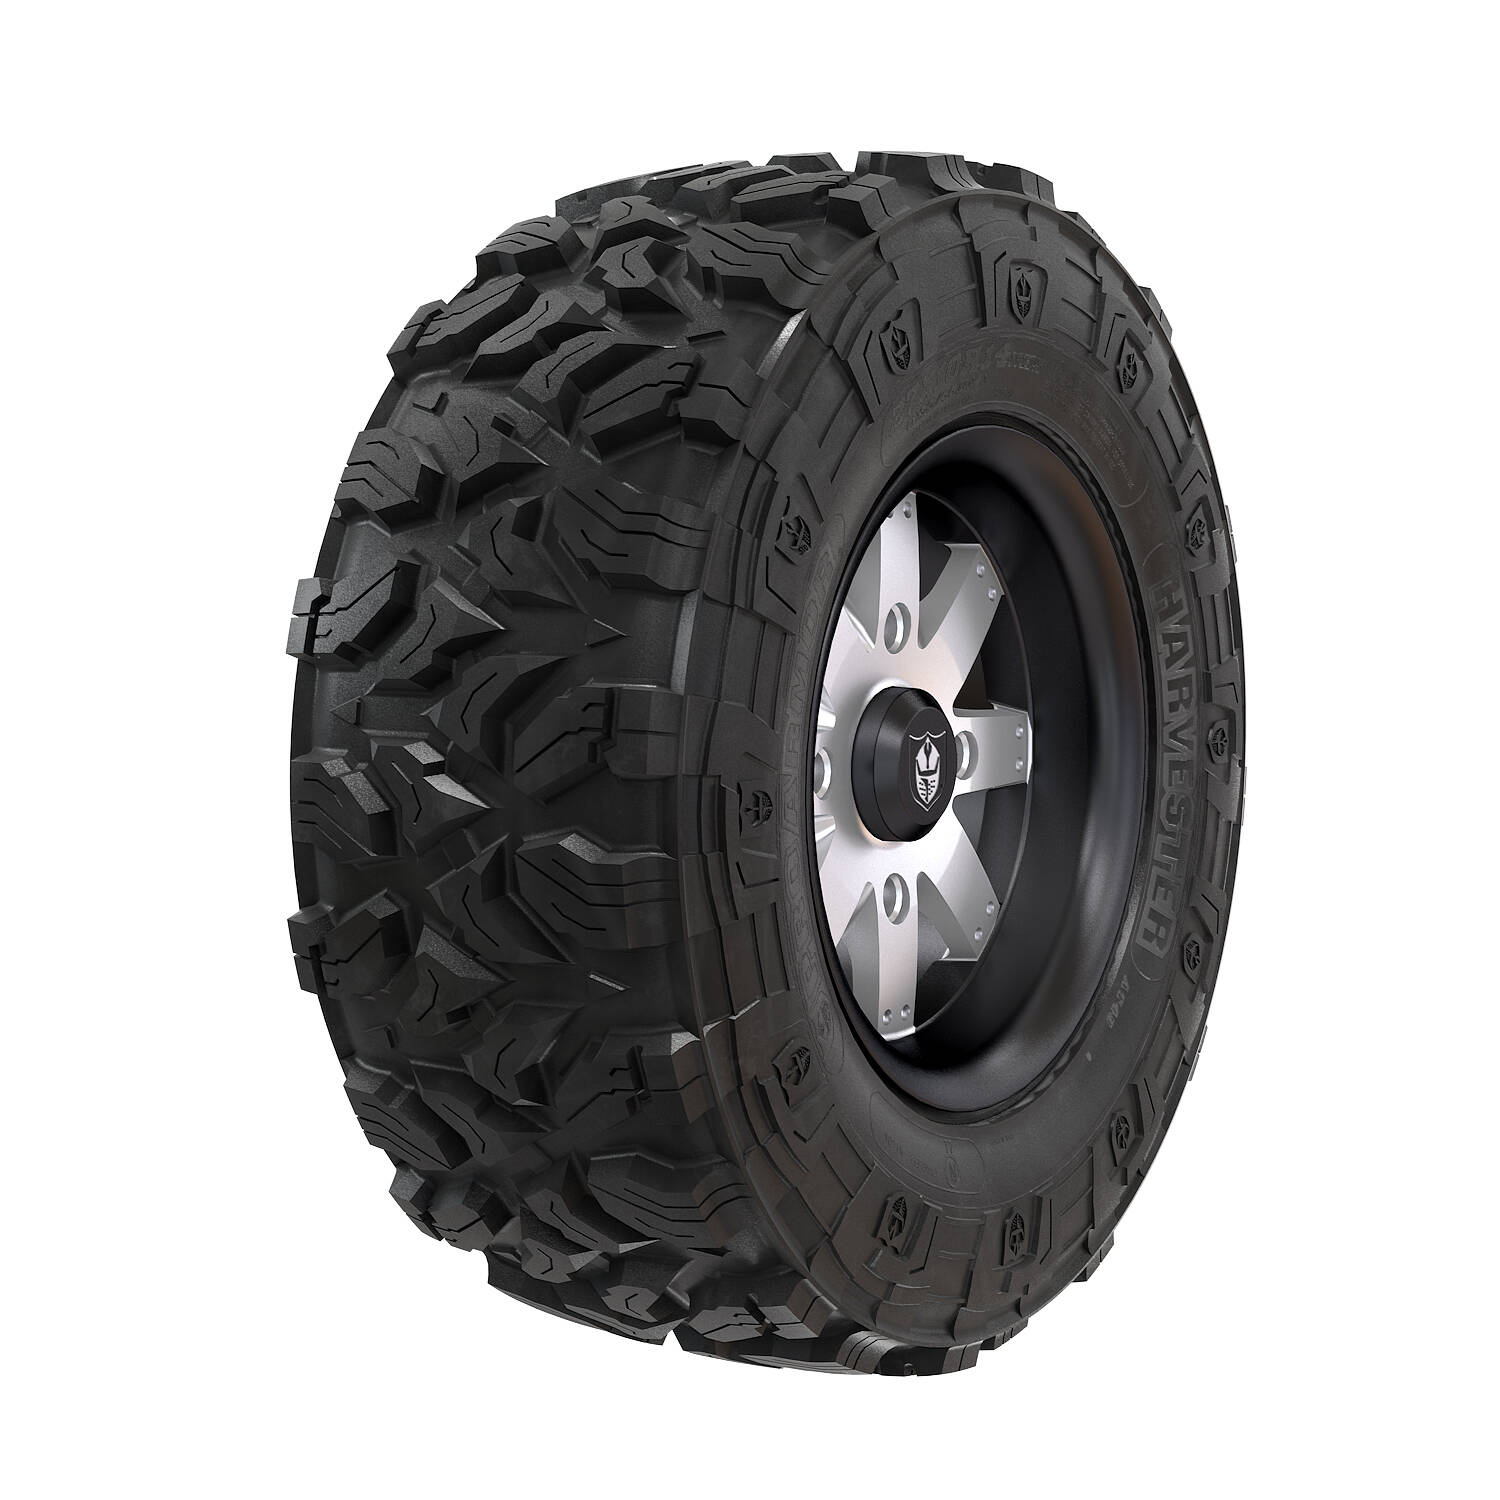 Wheel & Tire Set: Pro Armor Harvester® & Amplify - Accent - 28""